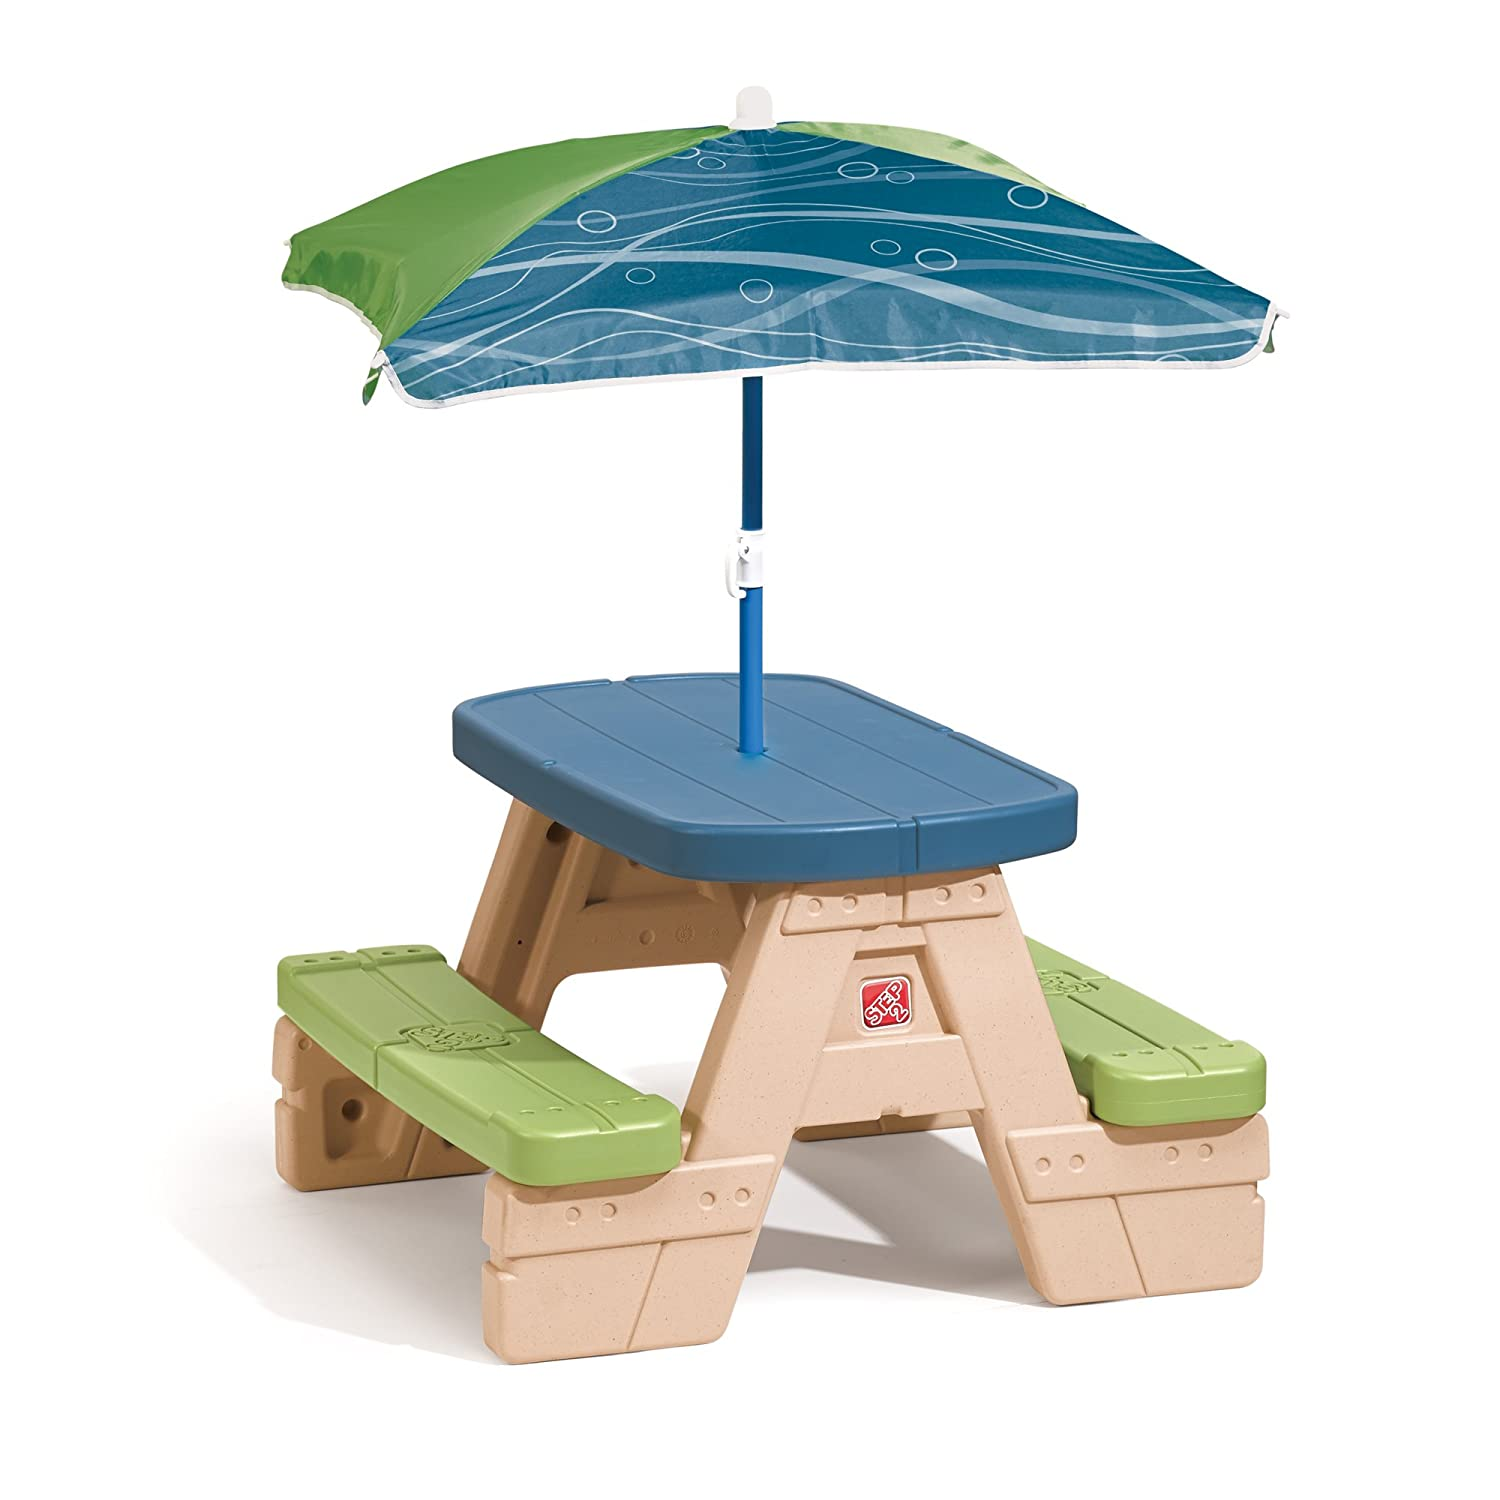 Amazon.com: Outdoor Furniture: Toys & Games: Chairs, Picnic Tables ...